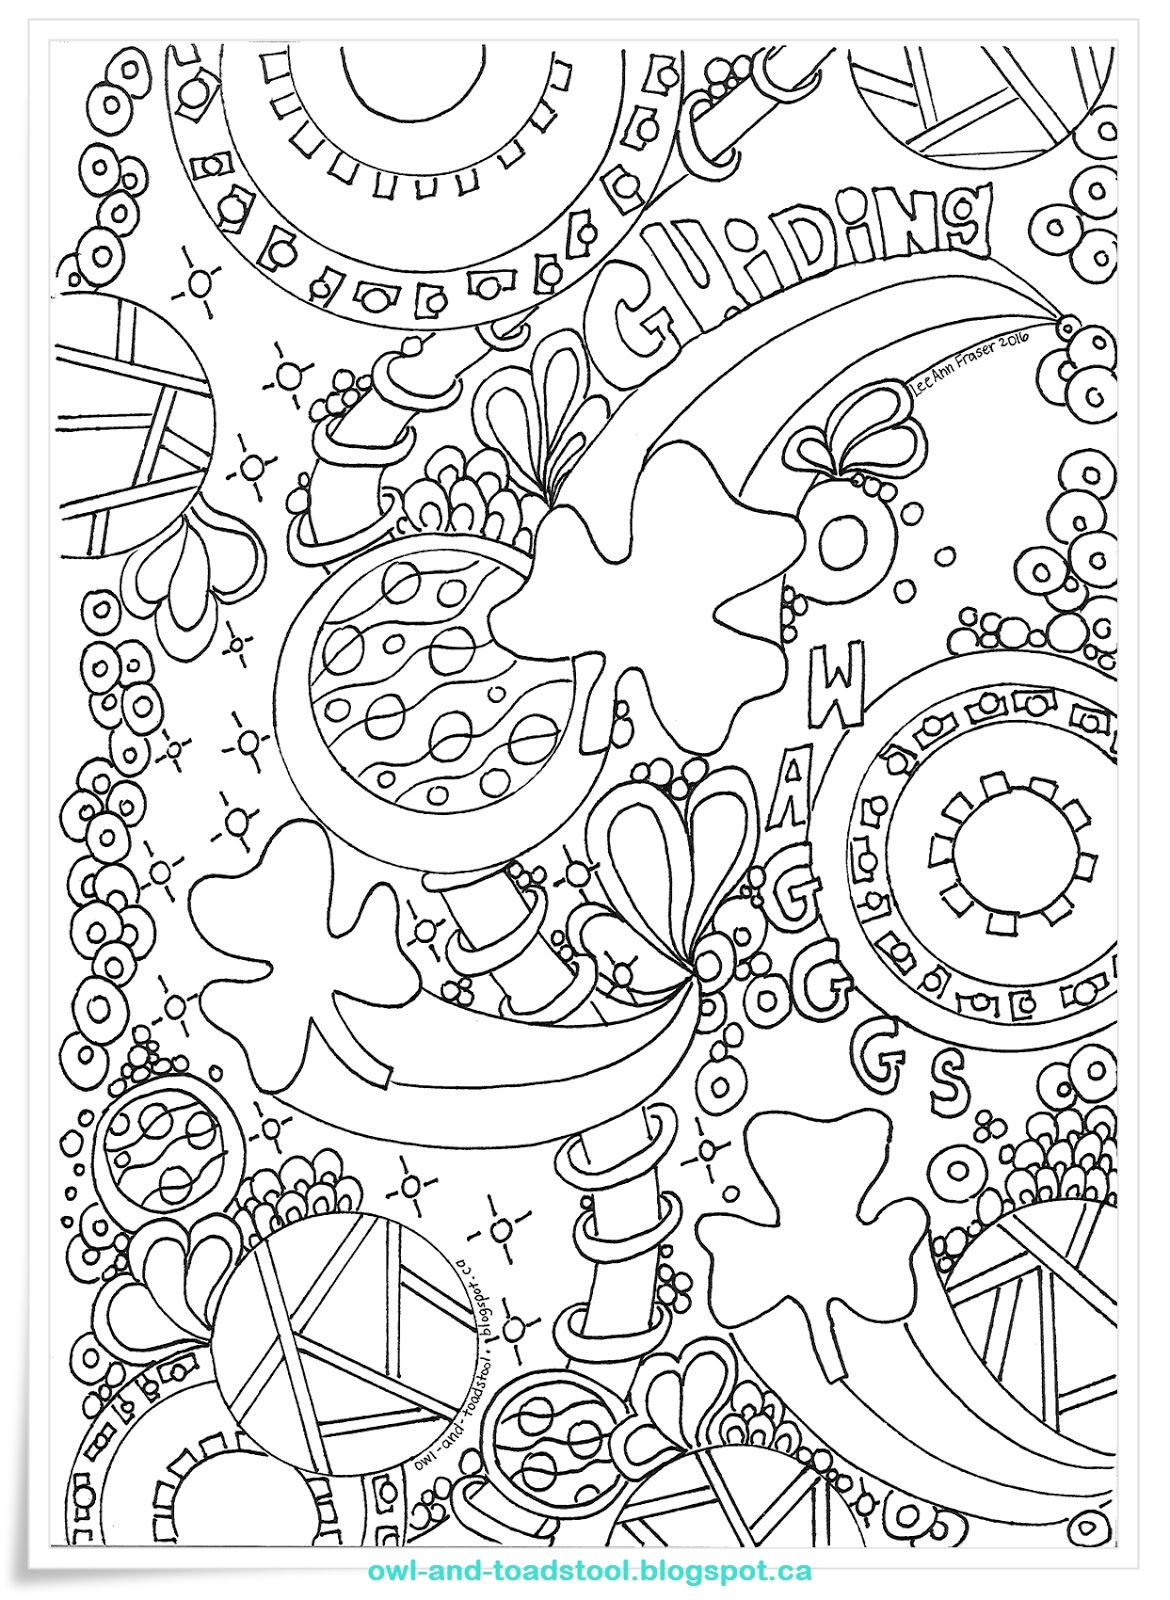 Owl & Toadstool: Doodle- Guiding Wagggs